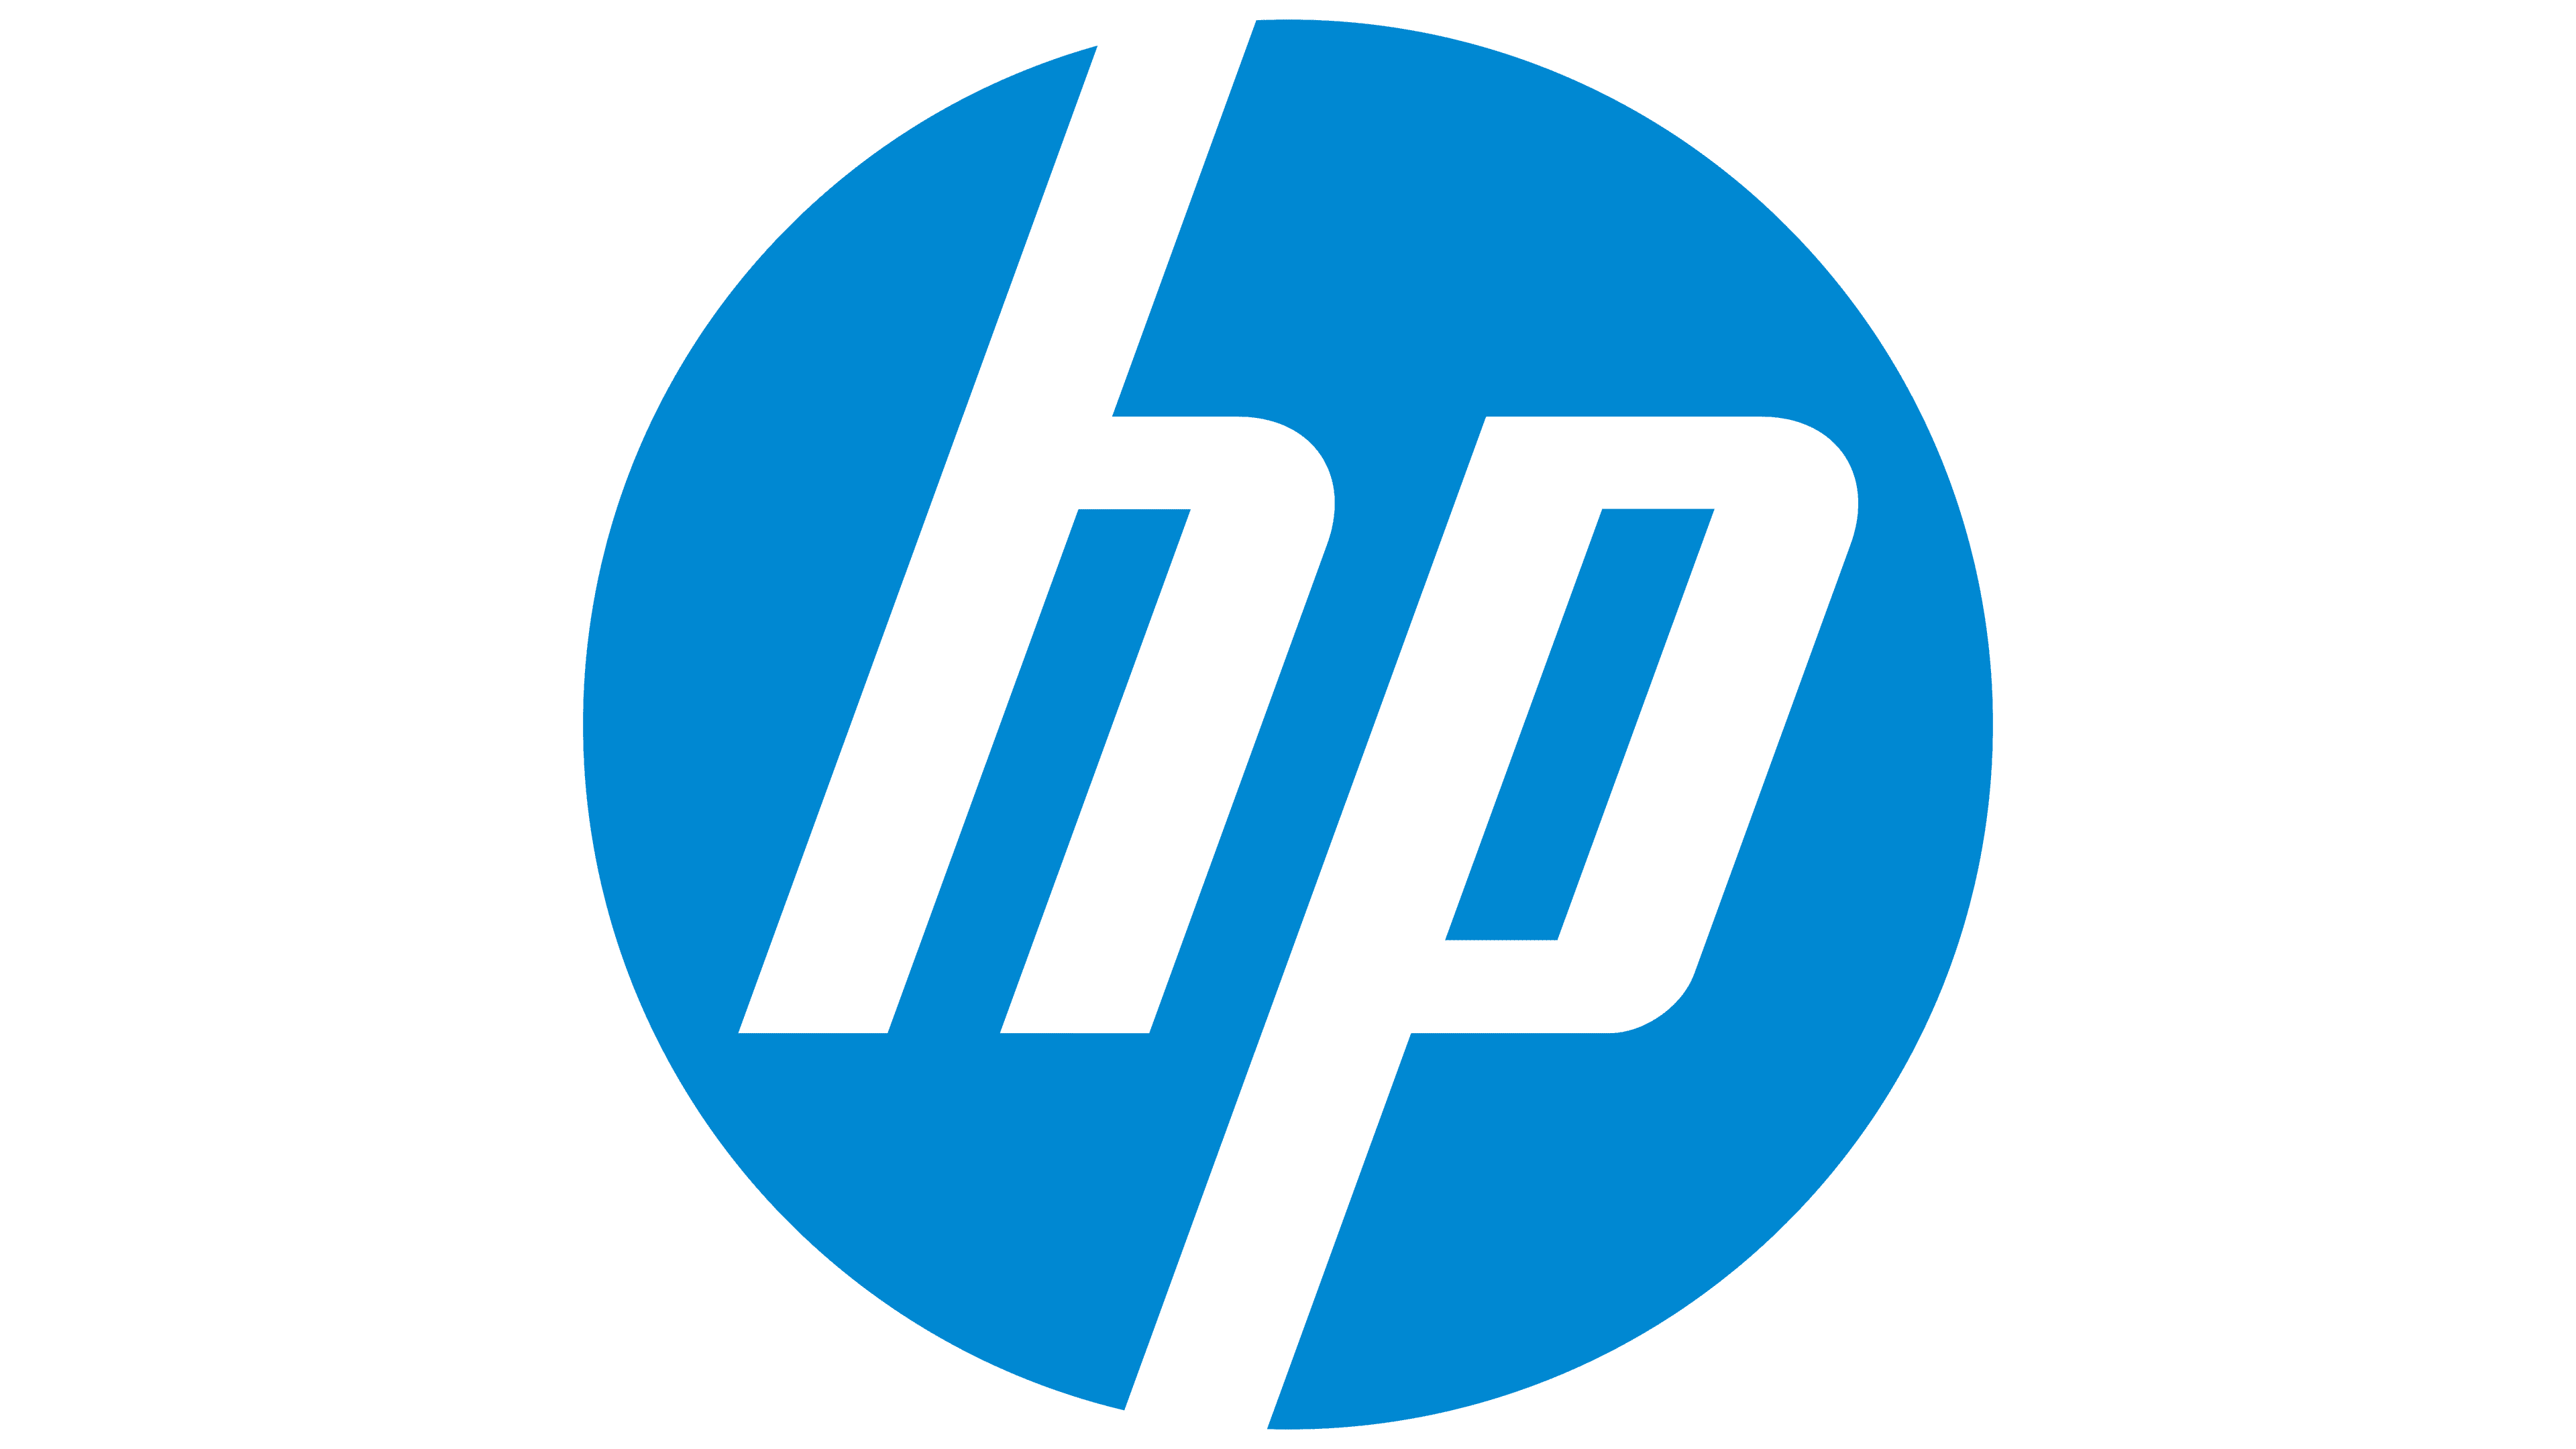 We are a HP enterprise partner and reseller and support all their solutions.